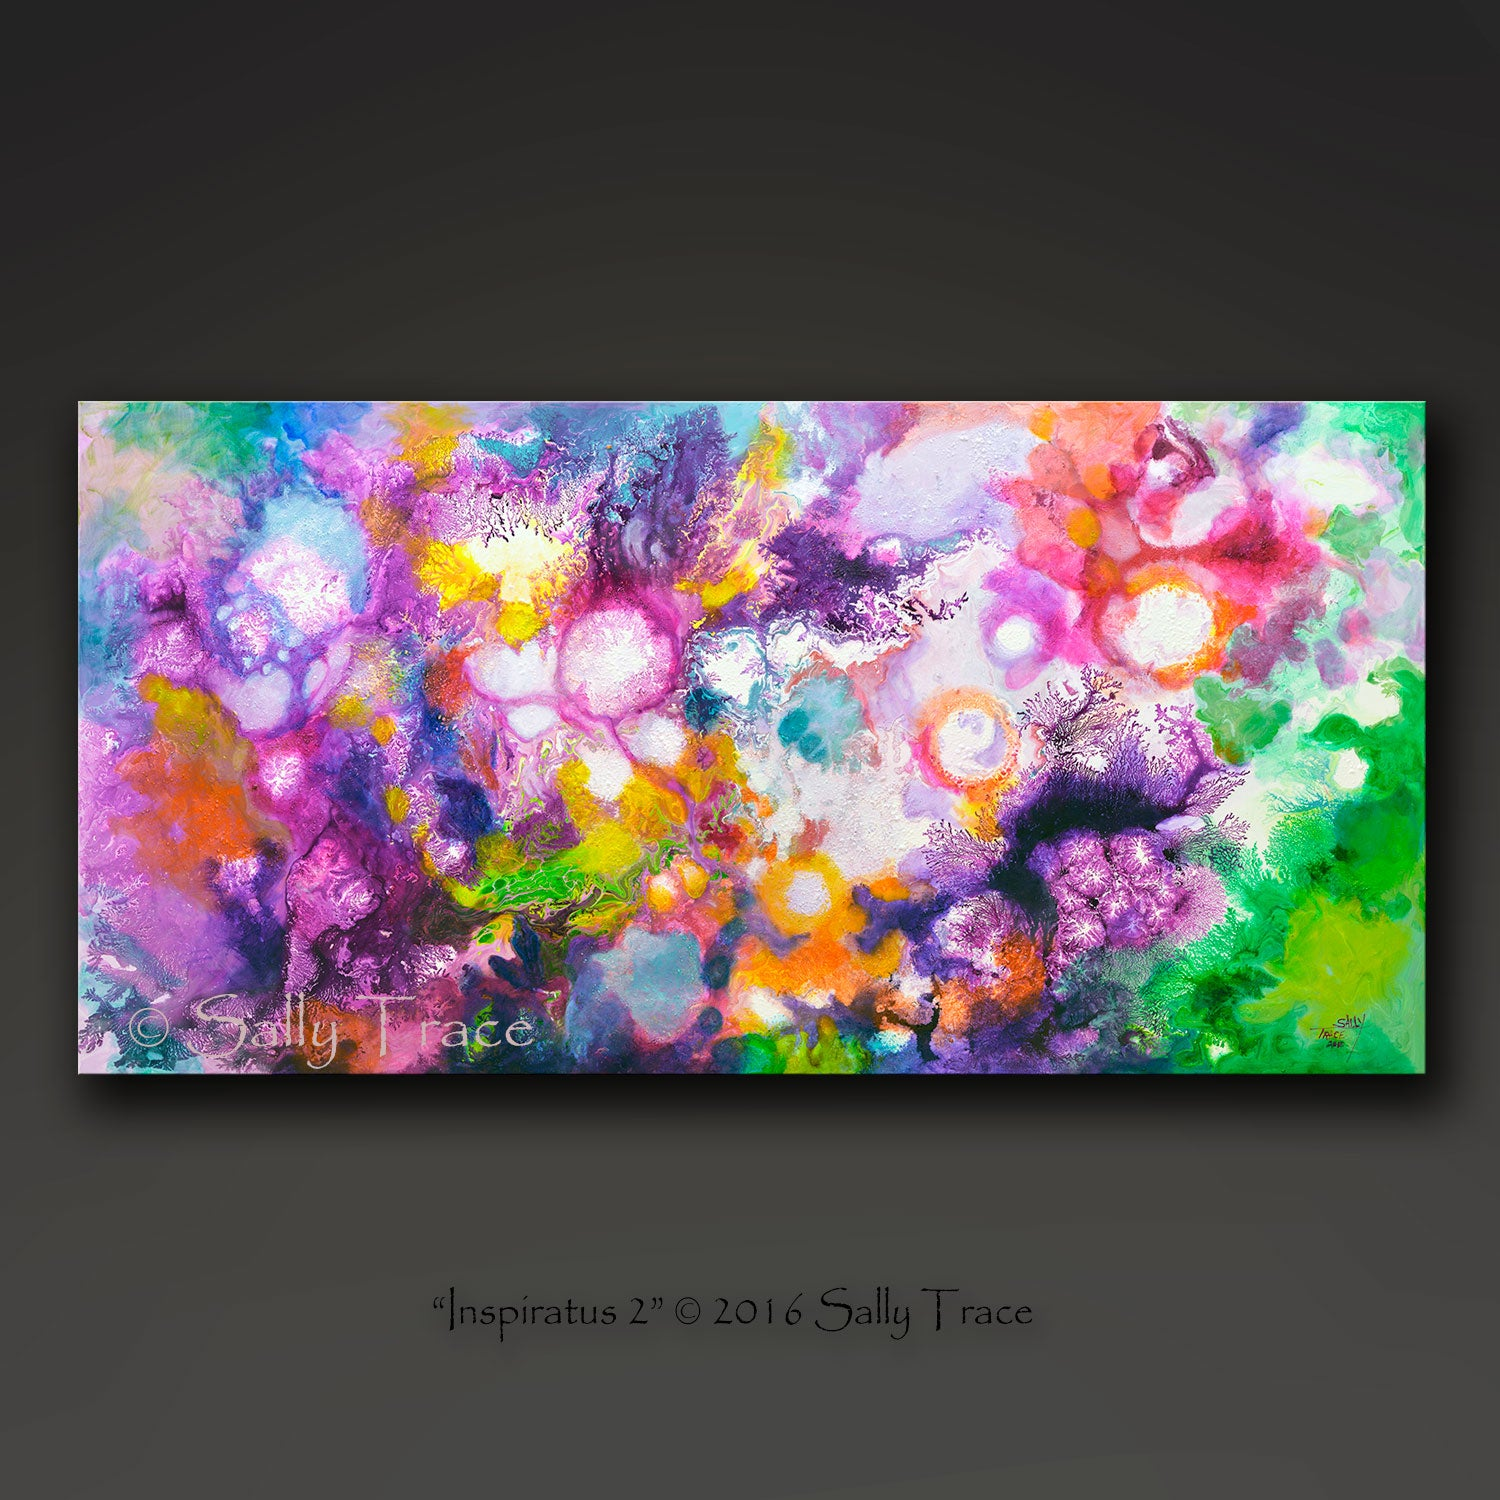 Inspiratus 2, fluid art giclee print for sale made from the original acrylic pour painting